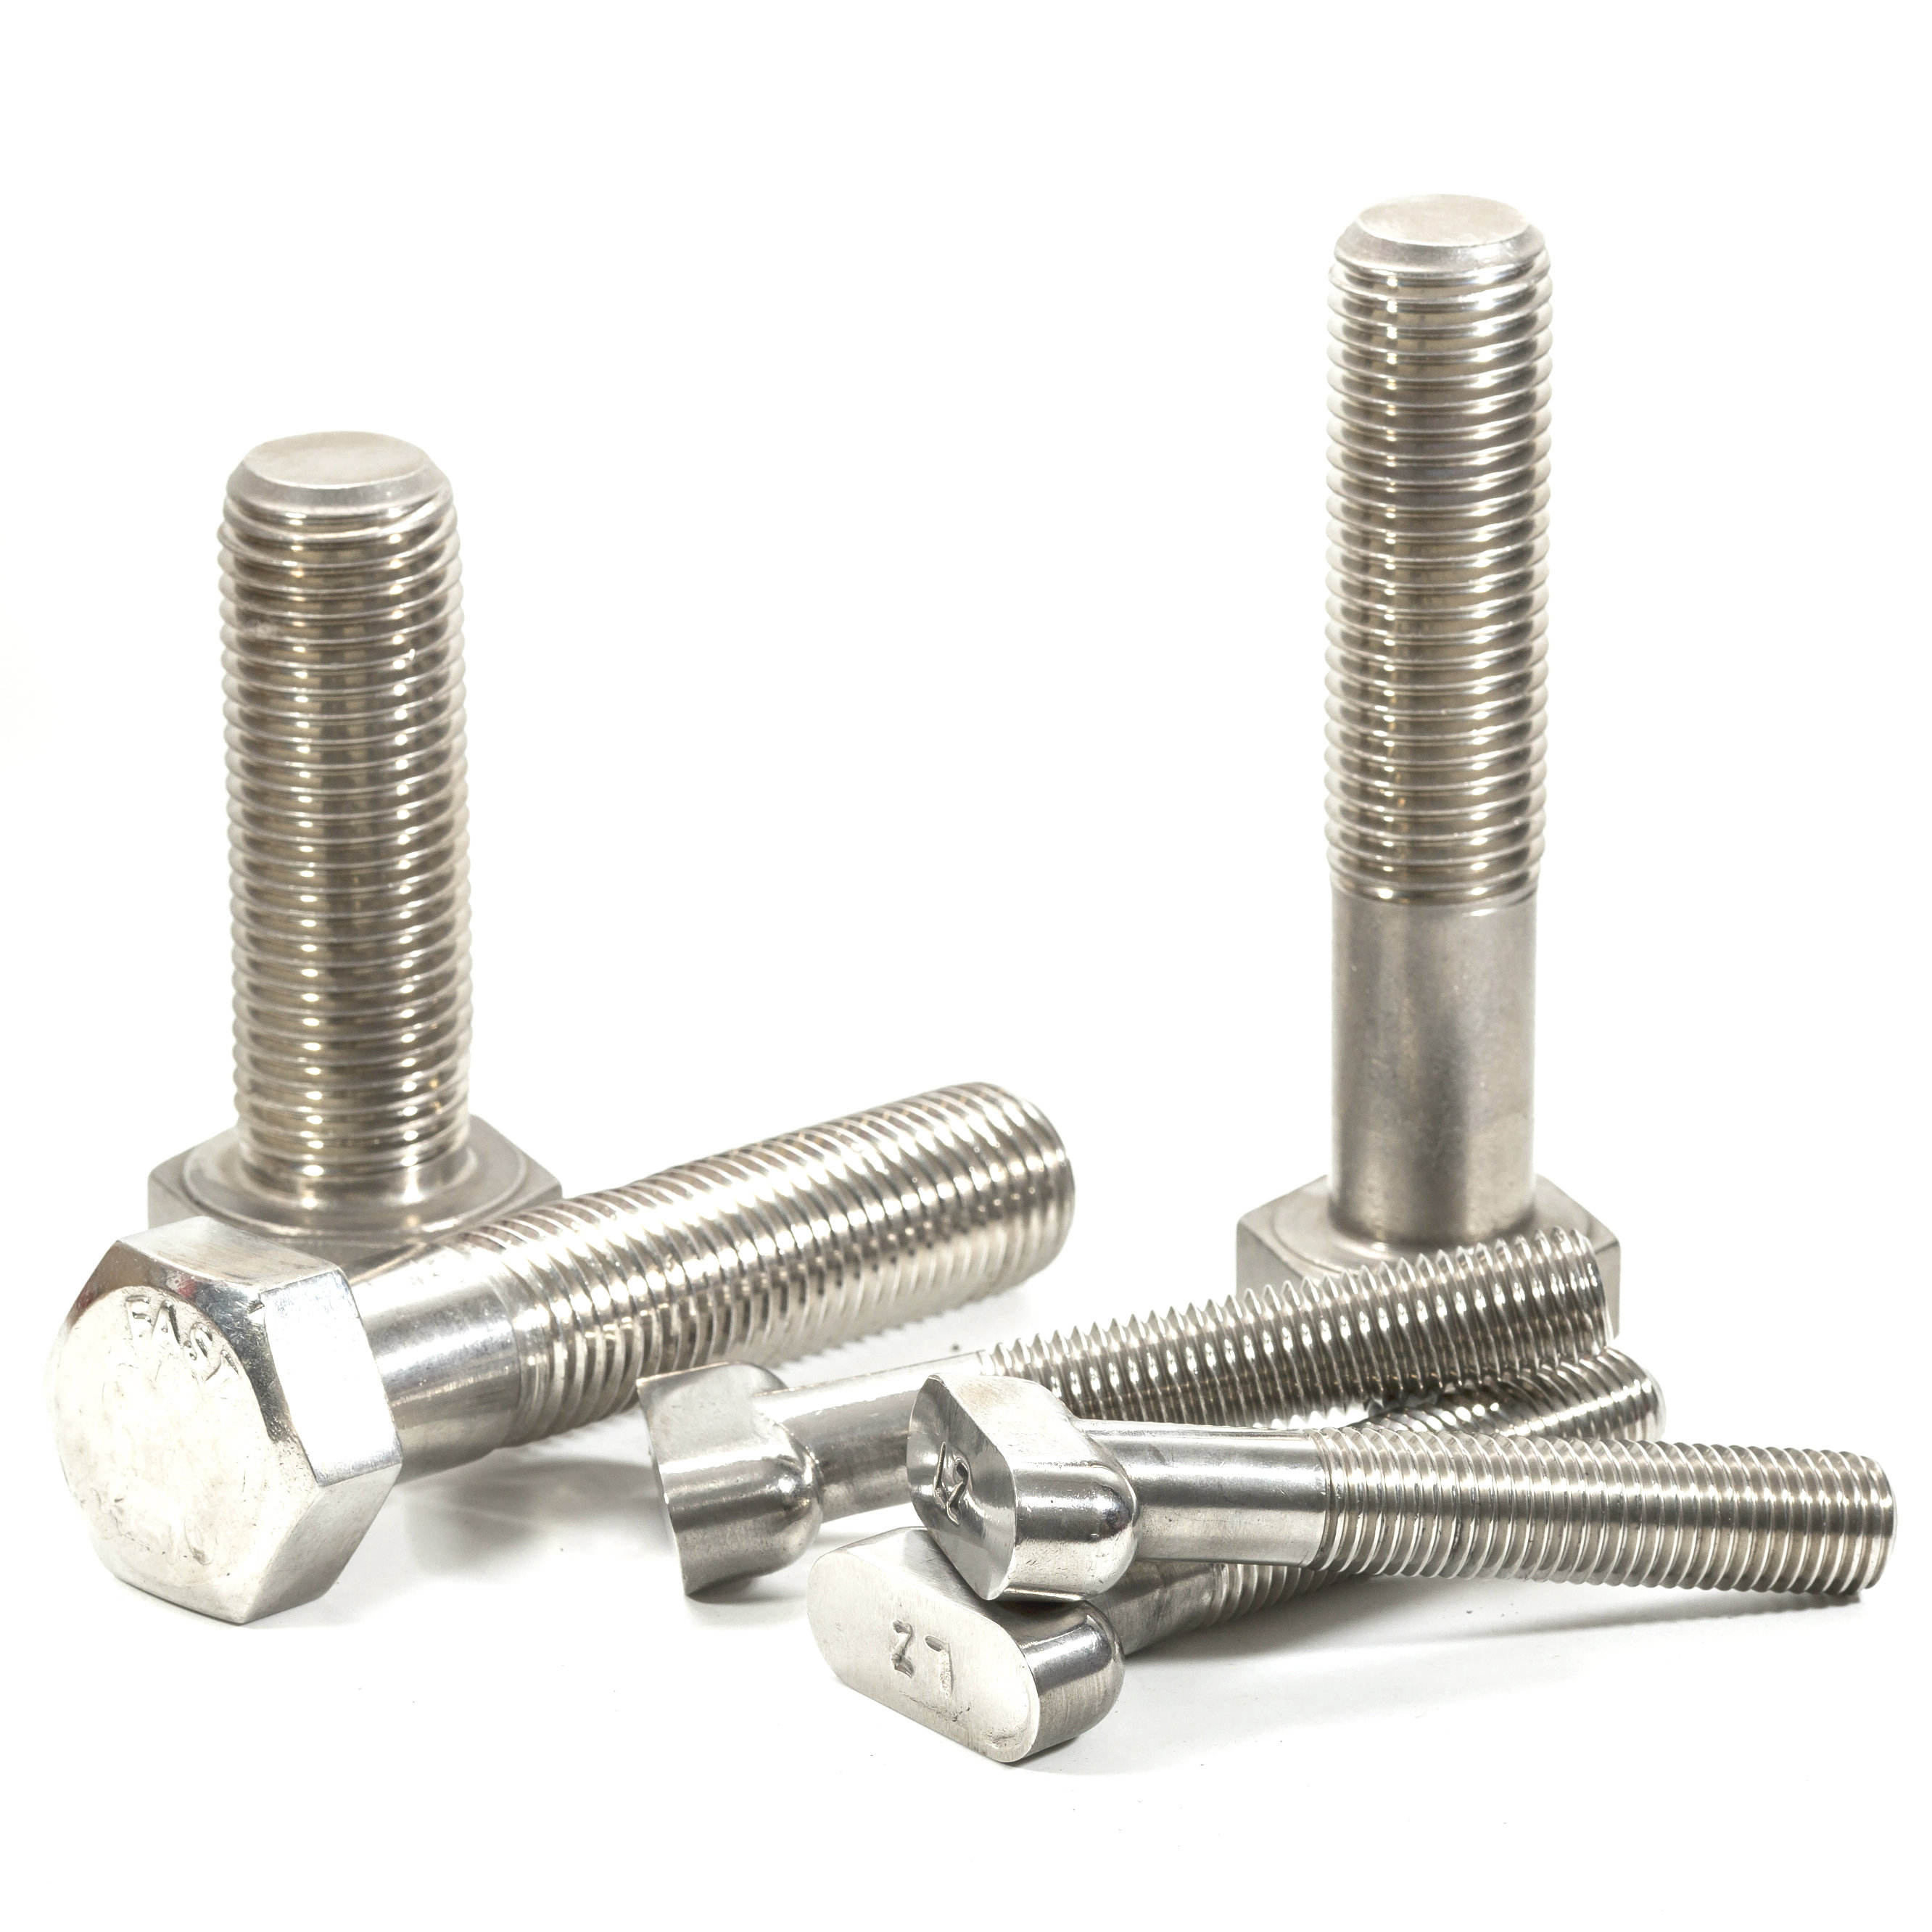 Stainless Steel SS304 SS316 Hex Bolts And Nuts